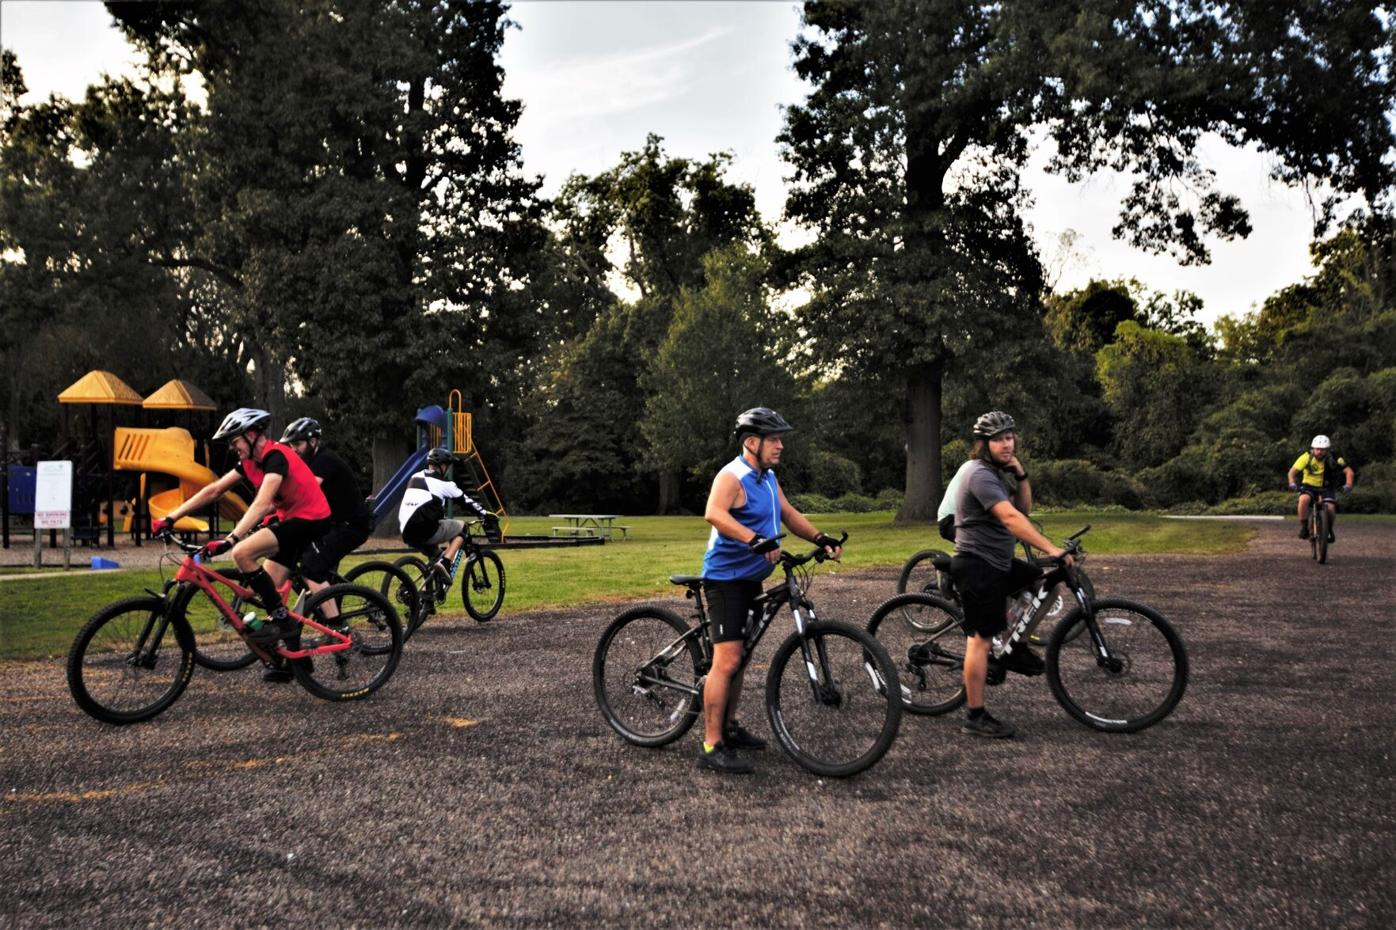 Hitting the trails for 'Taco Tuesday'